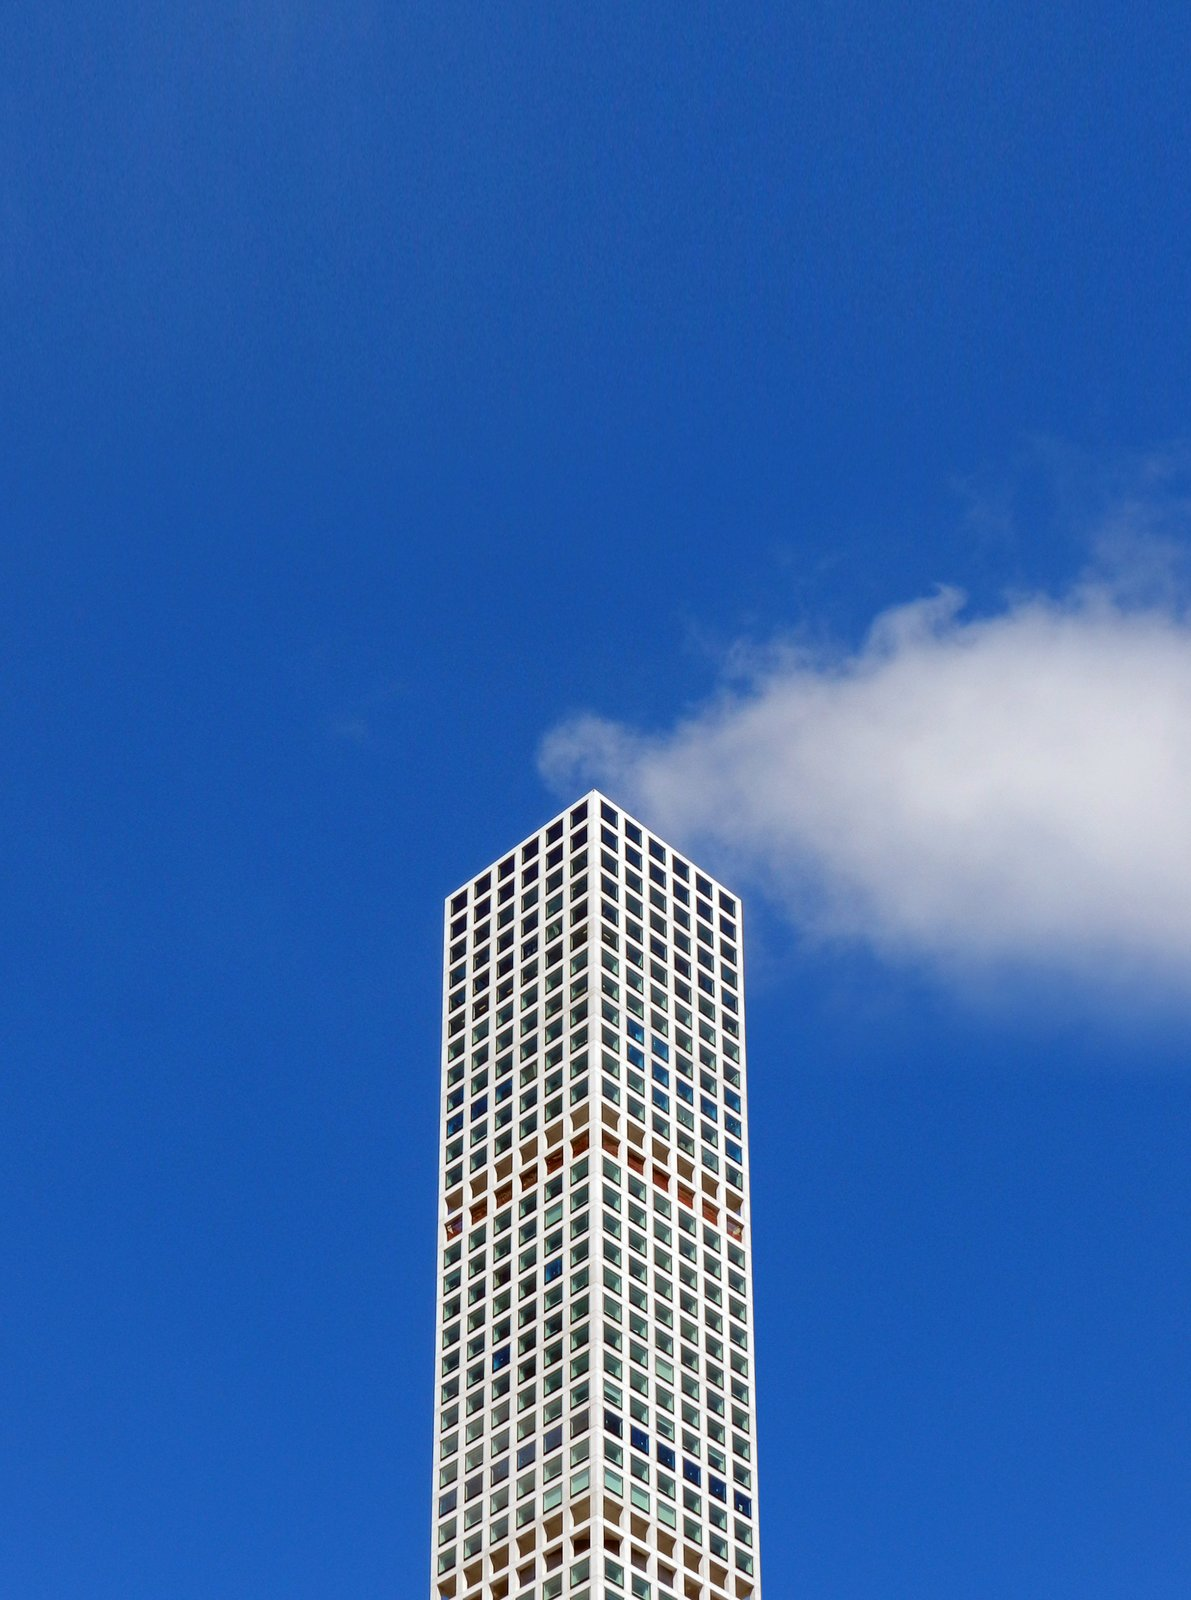 The Smoking Building. A well-placed cloud gives the impression that this New York City building is emitting steam, a visual metaphor for the hot real estate market.  Photo 15 of 16 in Nikola Olic's Dizzying Architectural Photography